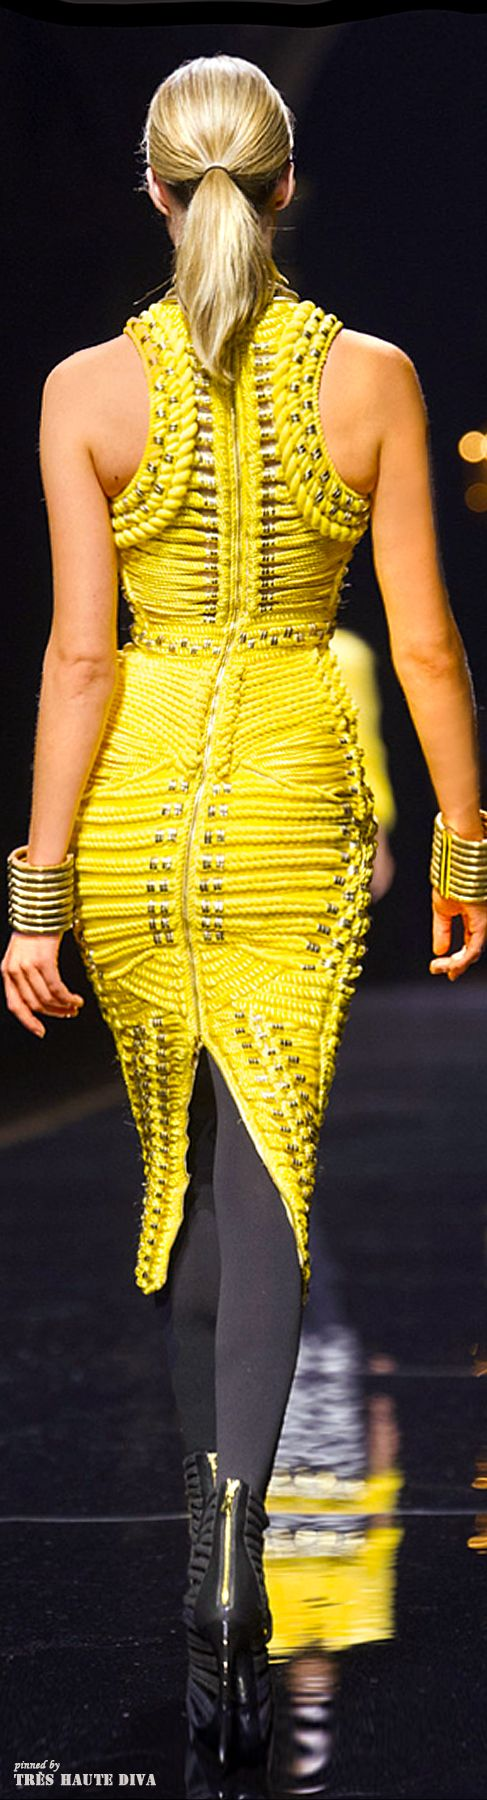 Balmain F/W 2014 - Paris Fashion Week. Admired by FalconFabrics.com.au